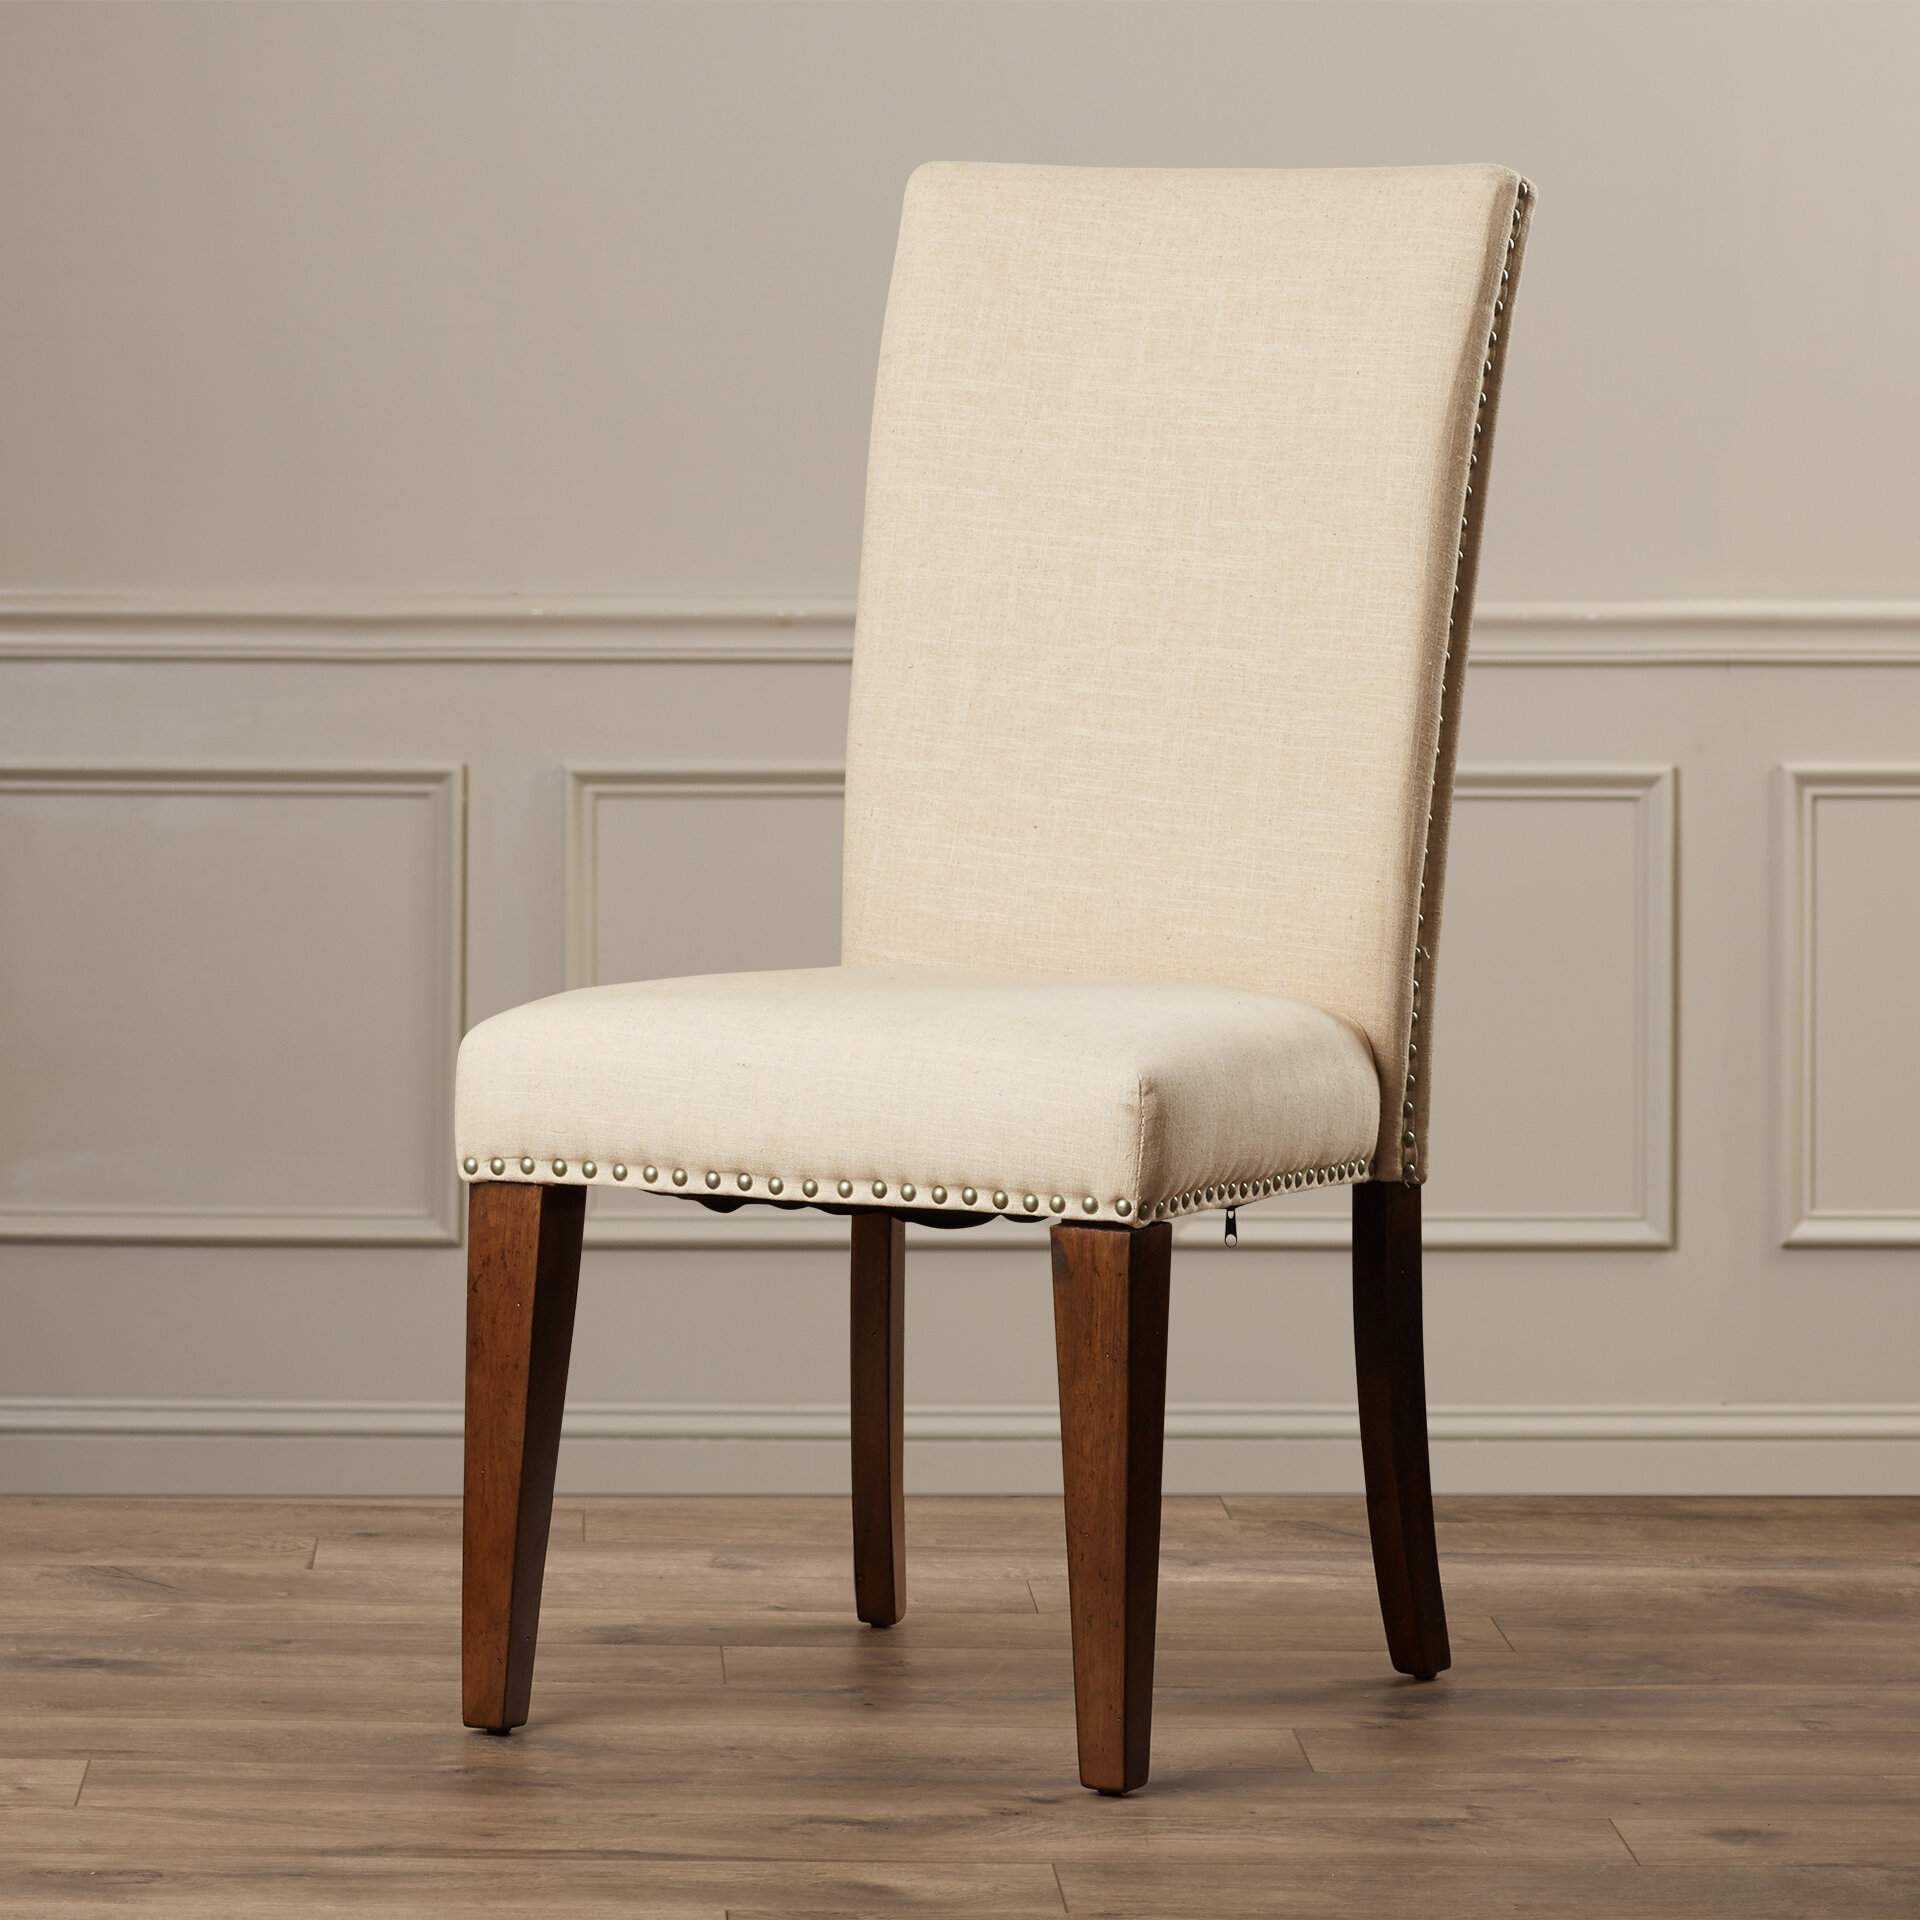 Alcott Hill Pearse Upholstered Parsons Chair U0026 Reviews | Wayfair